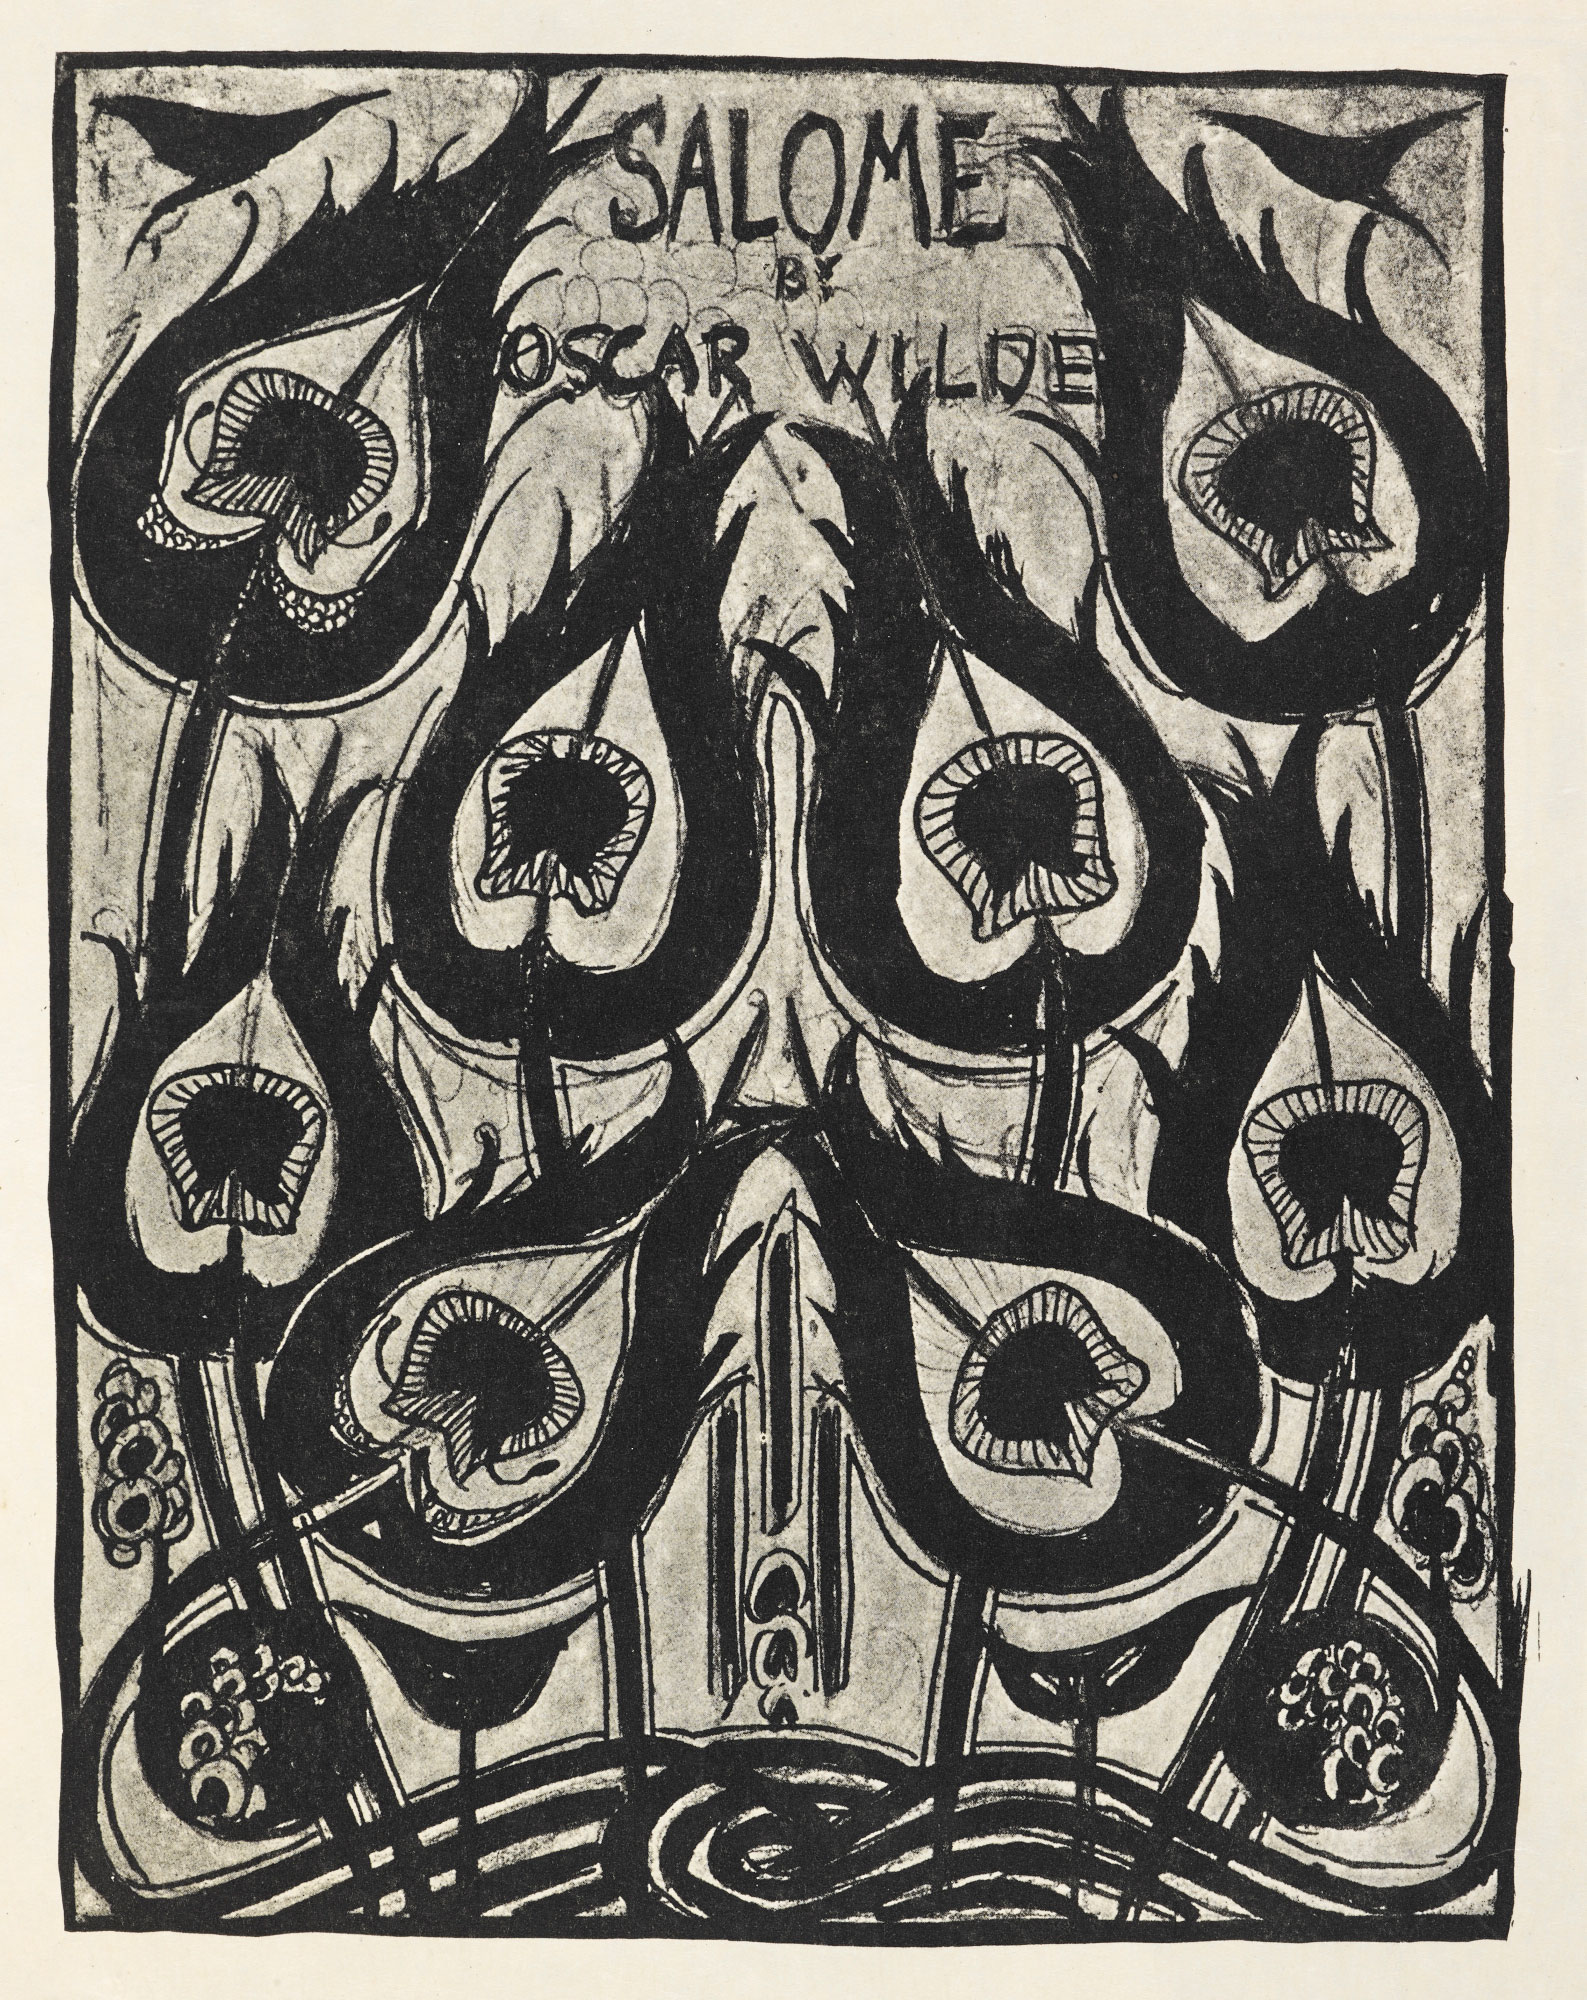 The least provocative illustration by Beardsley for Wilde's playscript. Beardsley's drawings were so audacious that Wilde worried his play would be remembered only as the type around Beardsley's work.